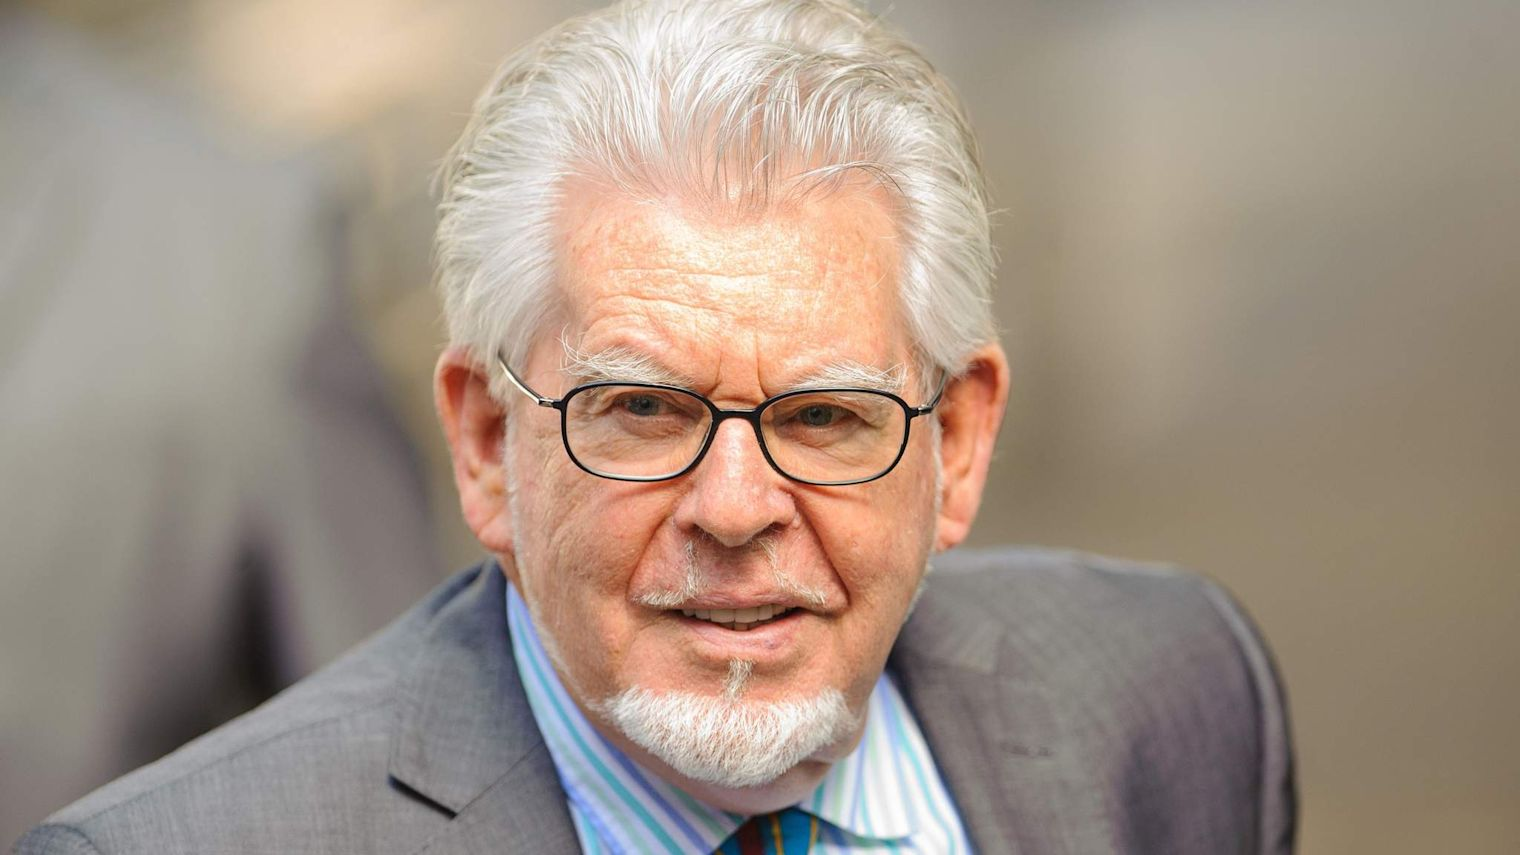 Rolf Harris To Be Charged With Indecent Assault